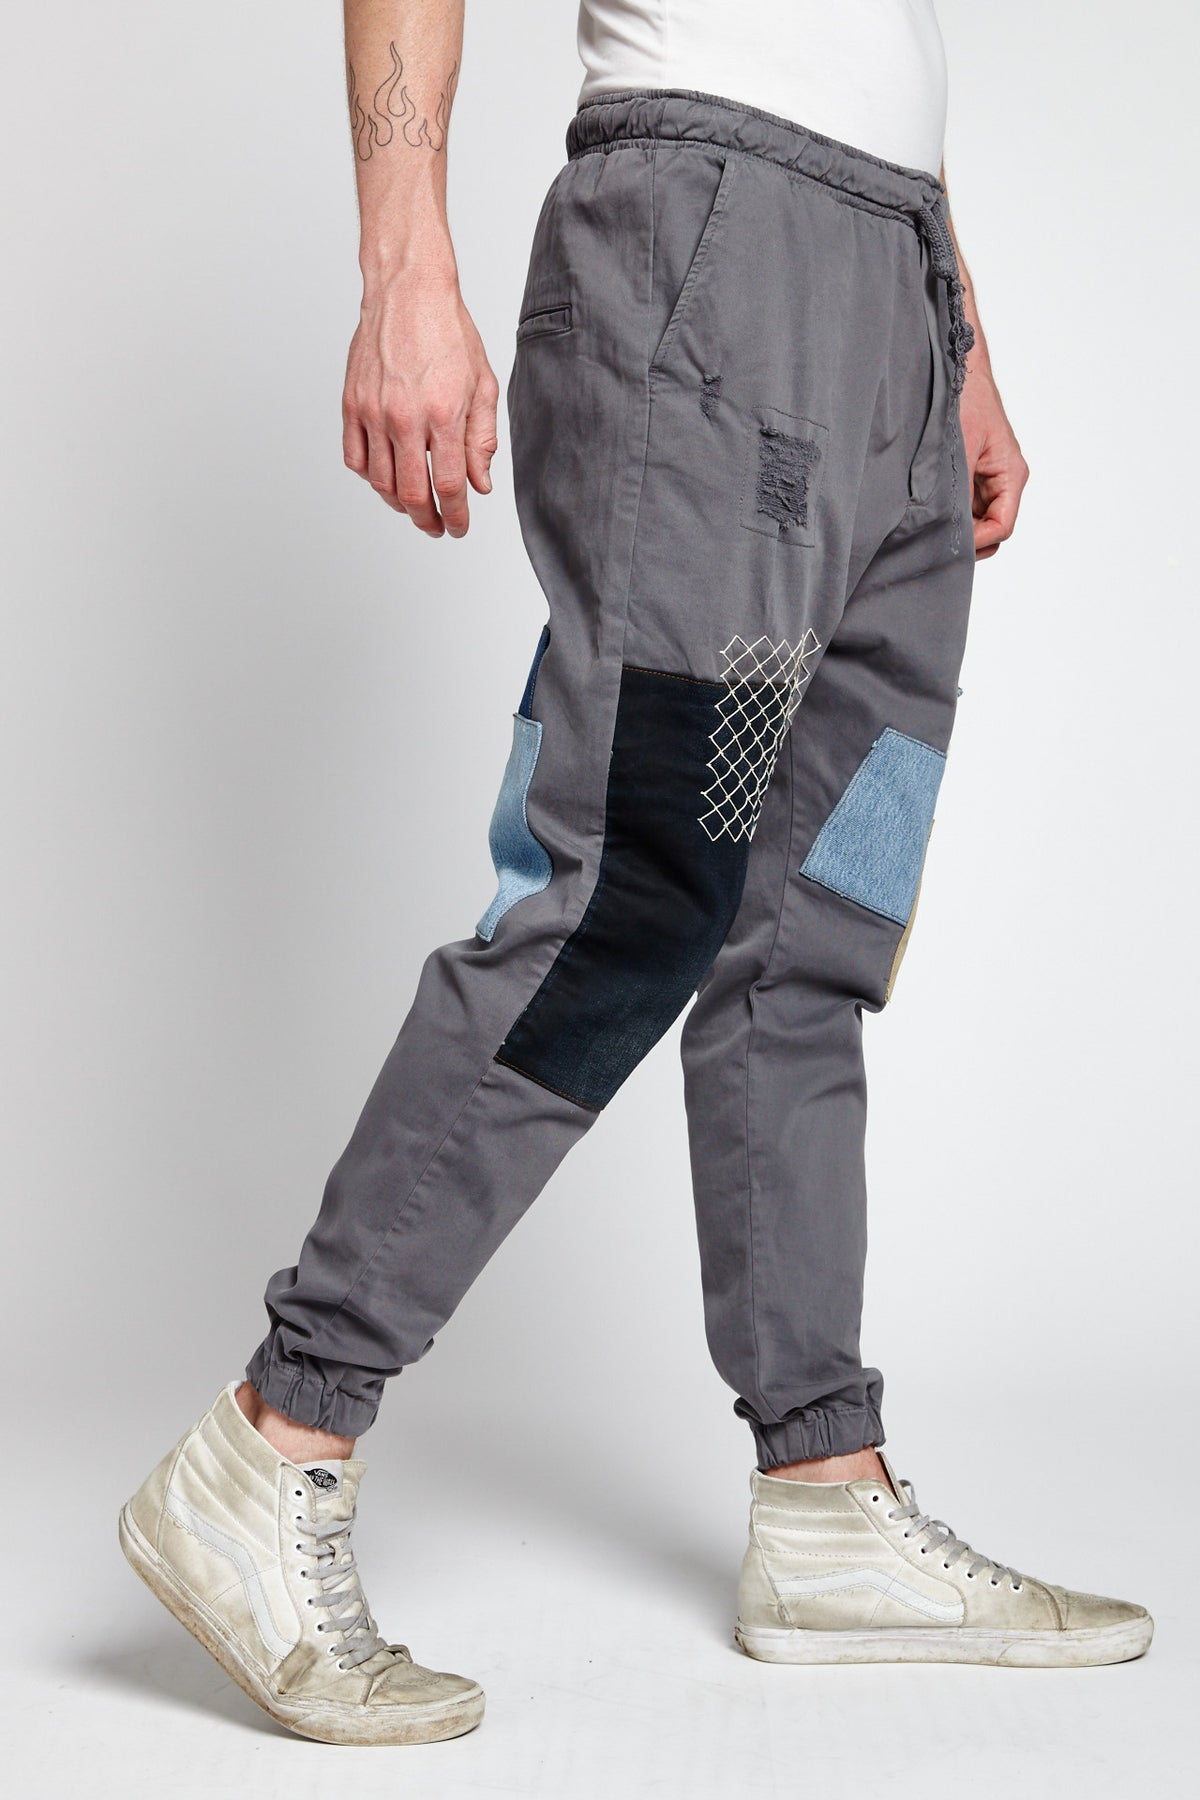 RETE GREY COTTON XL JOGGER PANTS-BOTTOMS-Mundane Official-XL-GRAY-Mundane Official